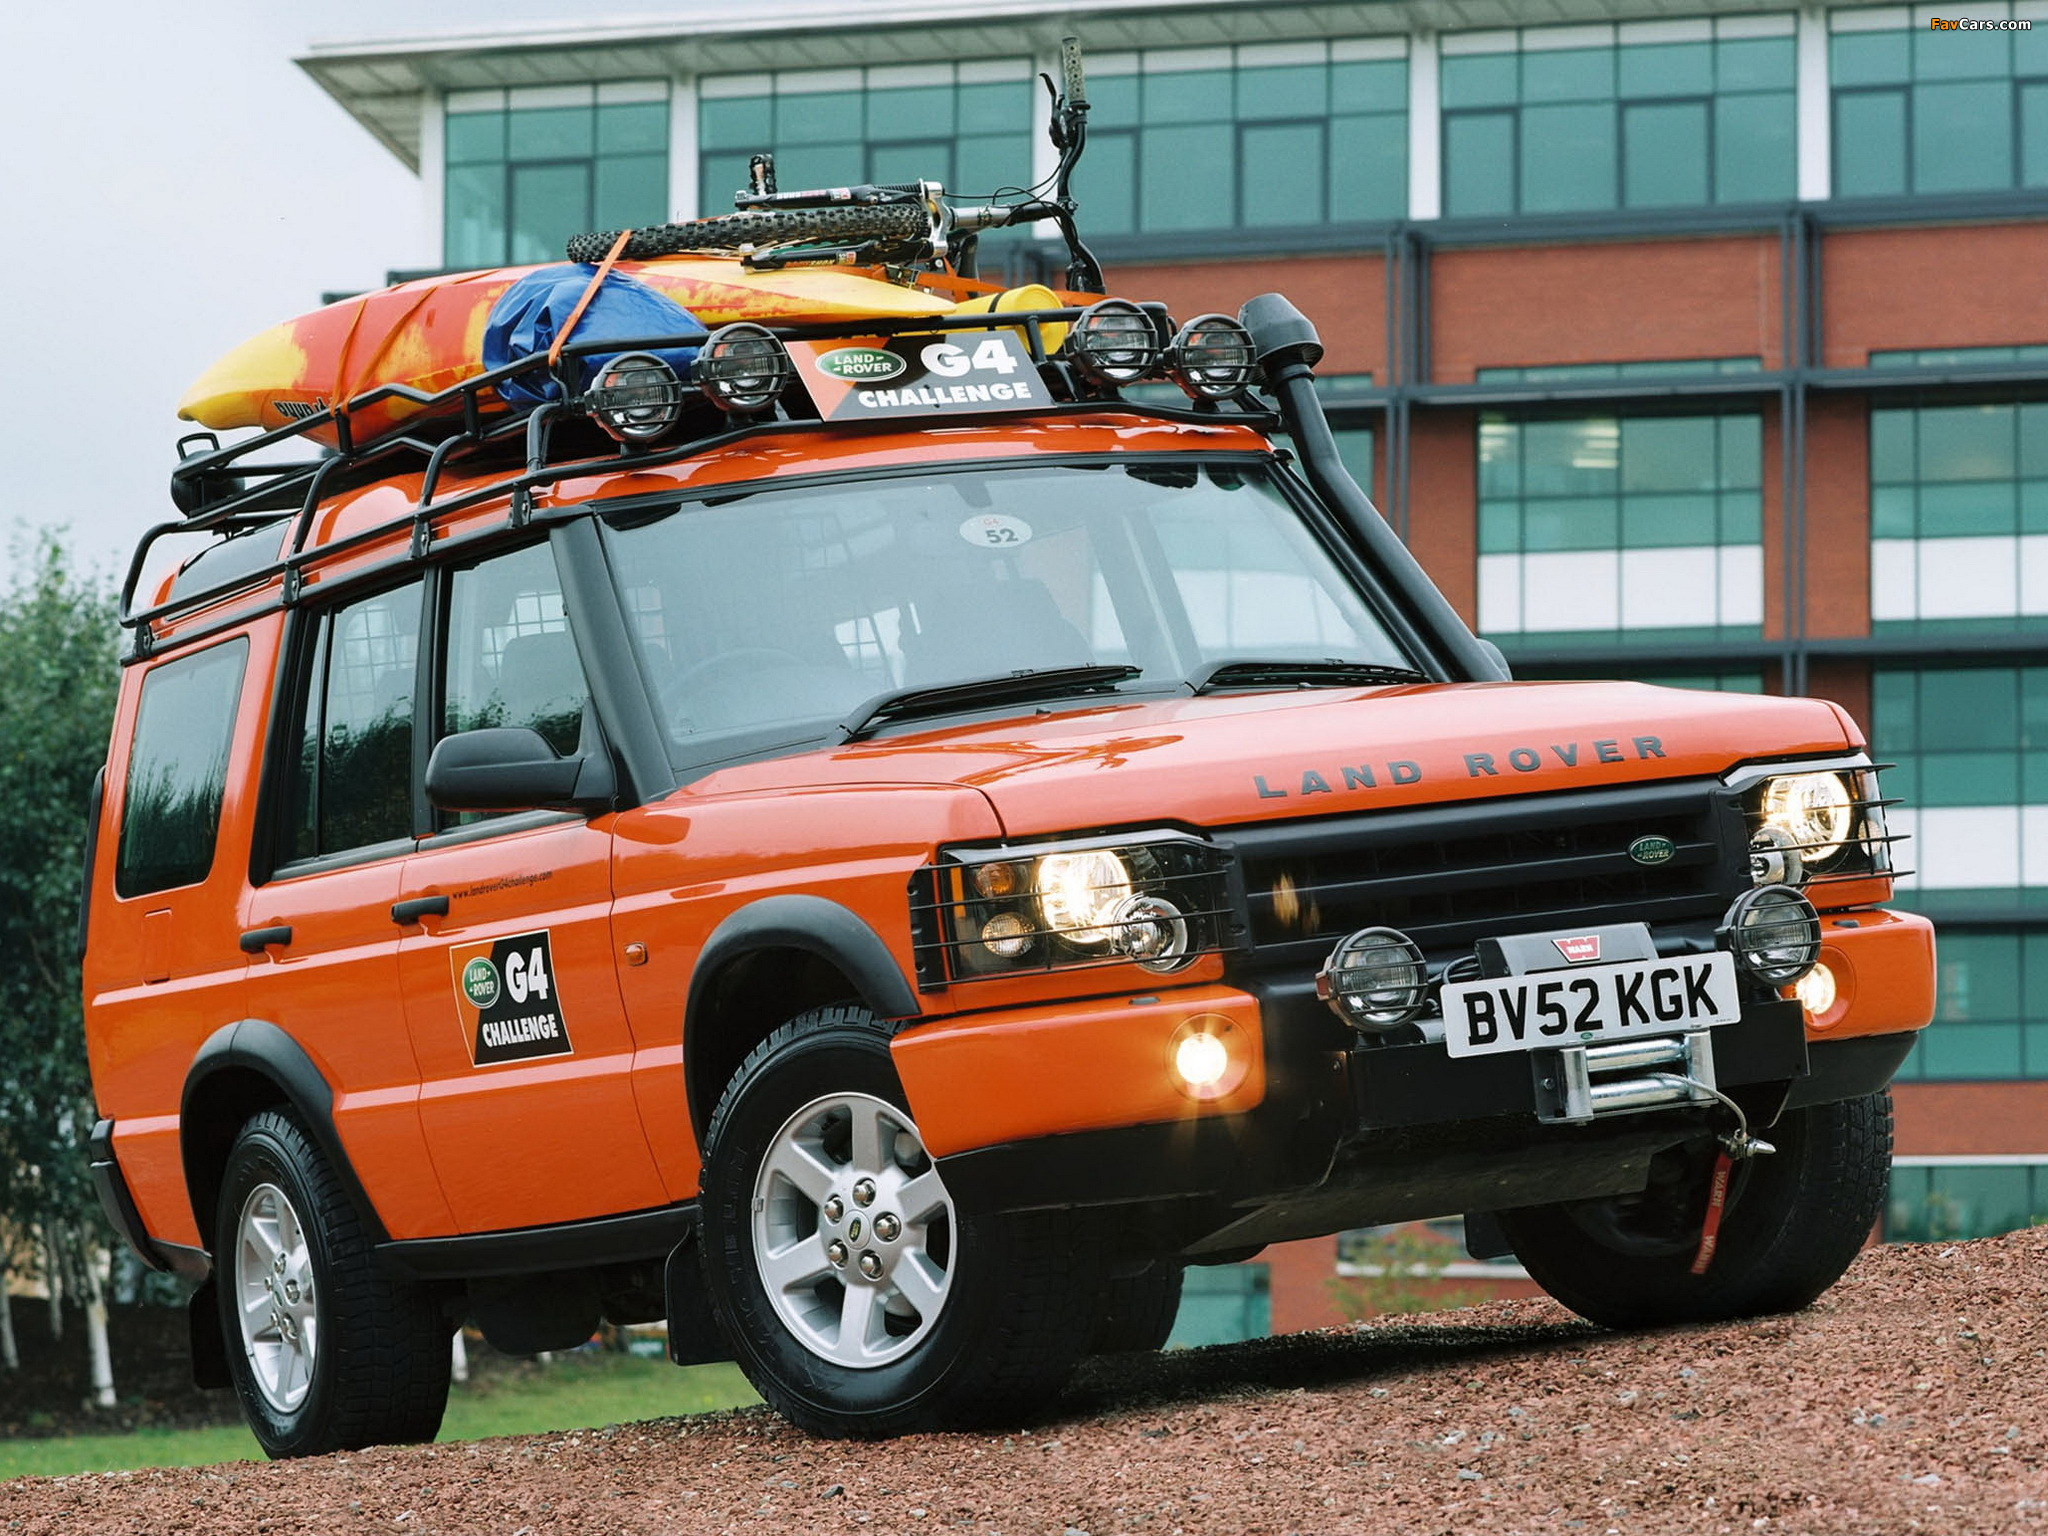 Land Rover Discovery G4 Edition 2003 pictures (2048x1536)